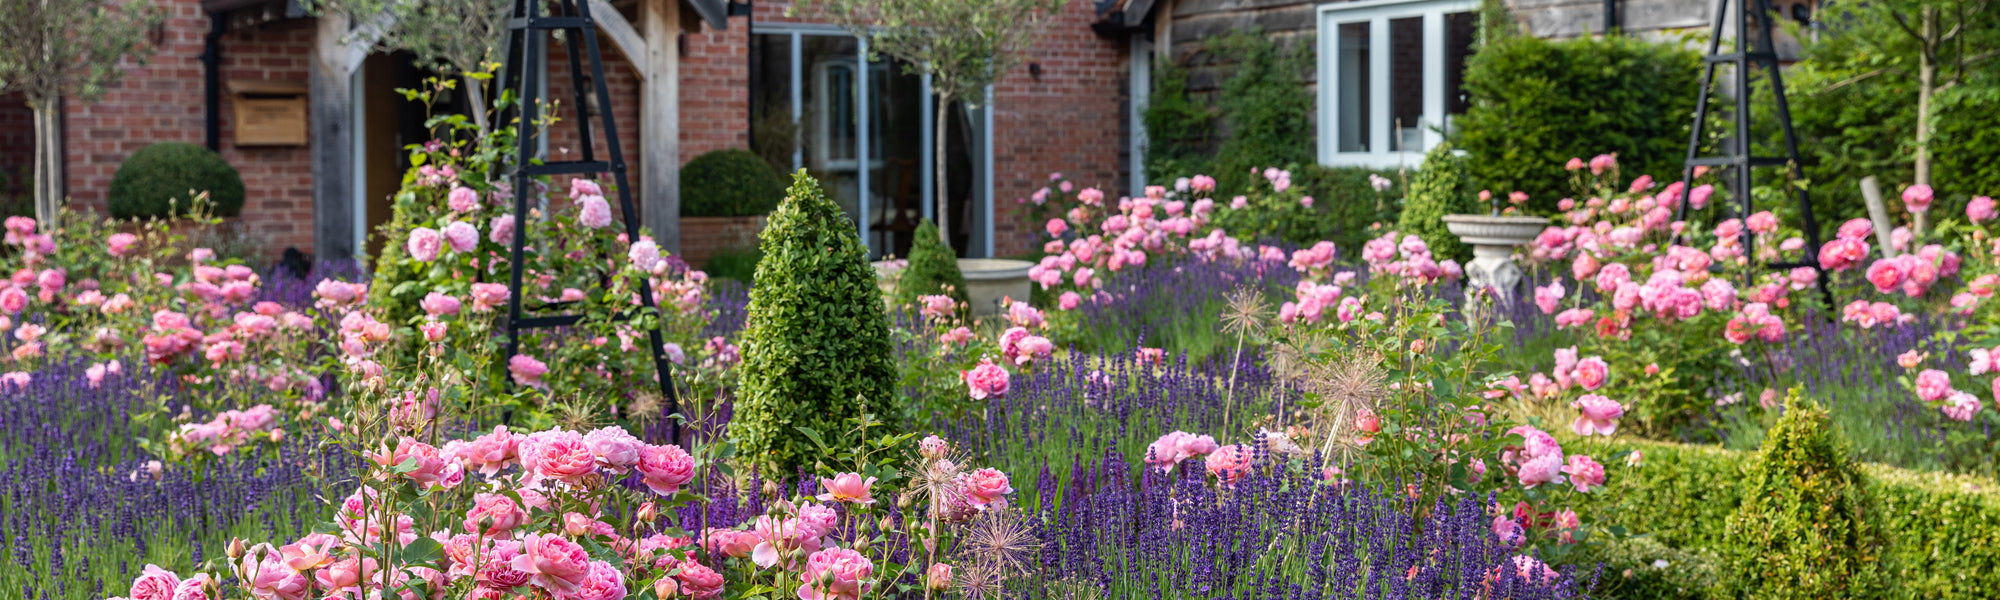 Garden in front of country house filled with pink roses, box hedges and lavender.